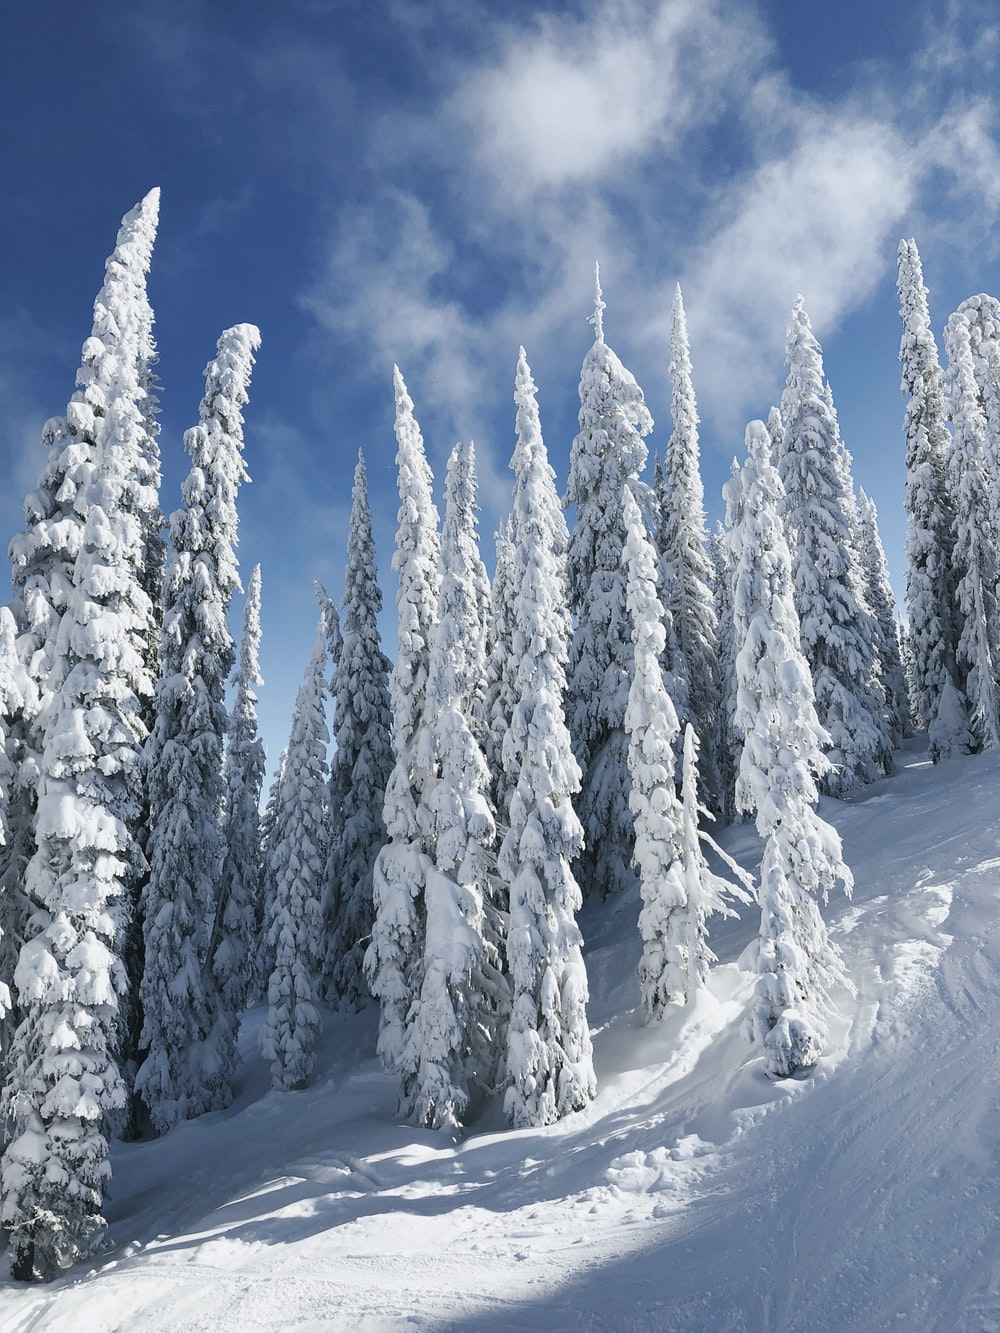 snow covered trees under white clouds and blue sky during daytime